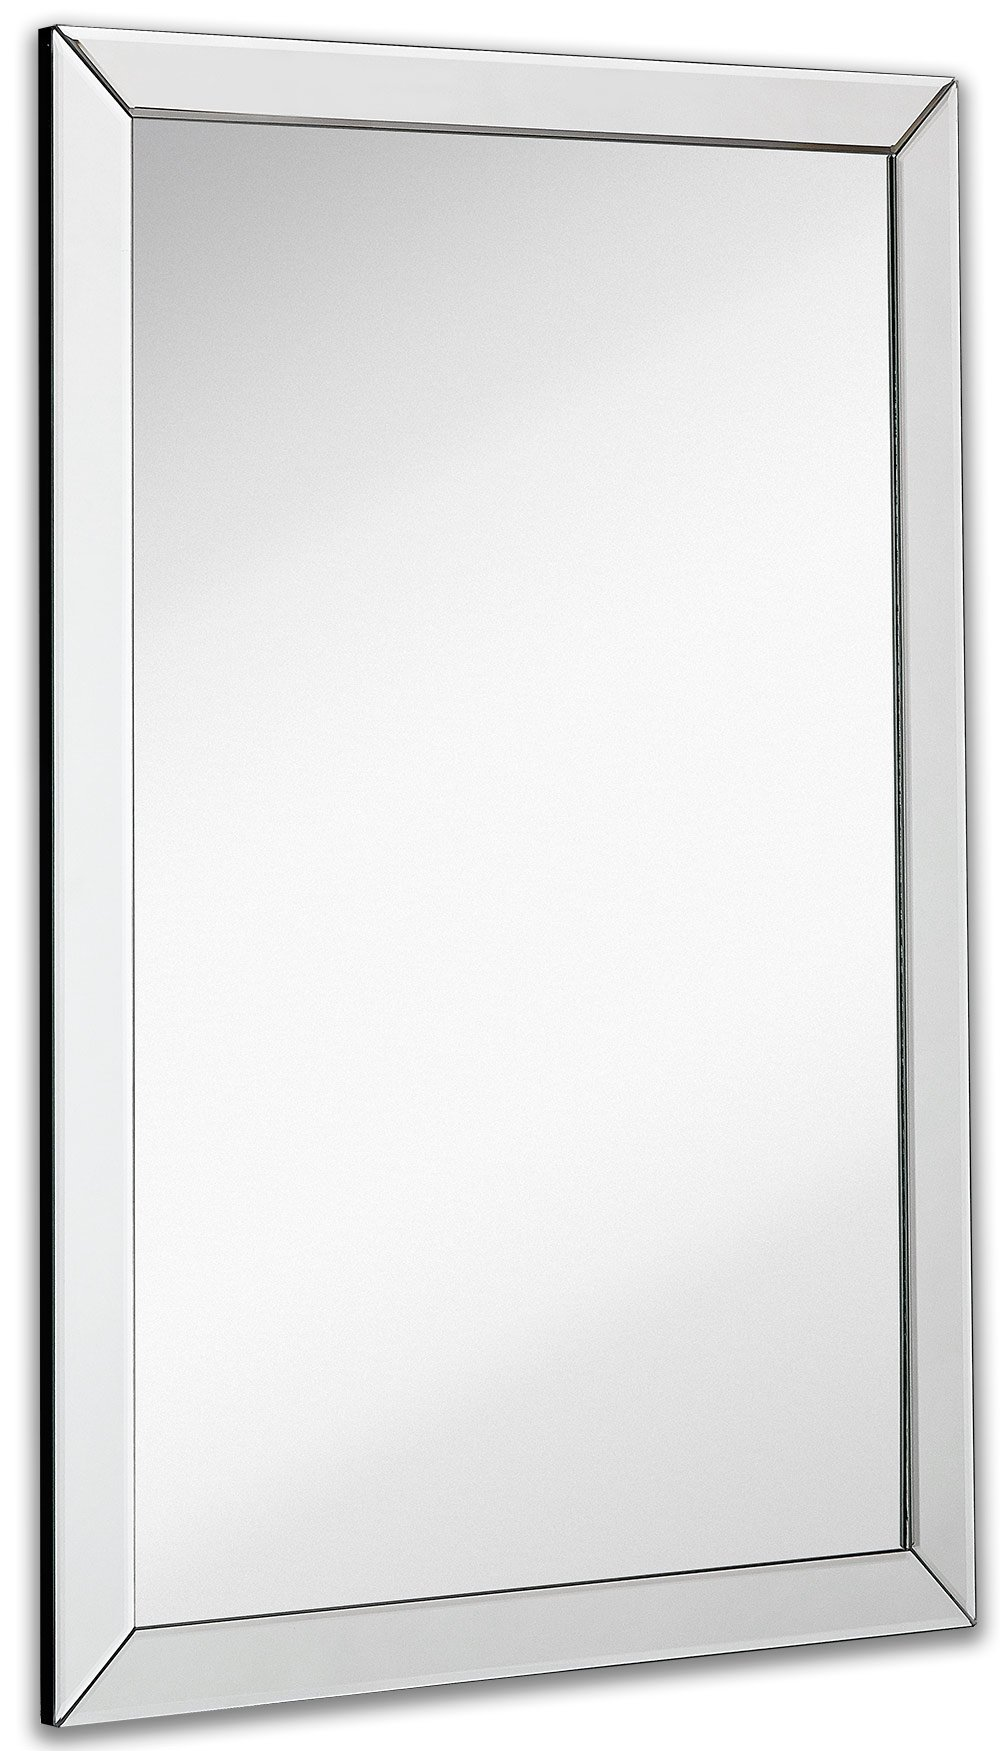 Large flat framed wall mirror with 2 inch edge beveled for Large flat bathroom mirrors